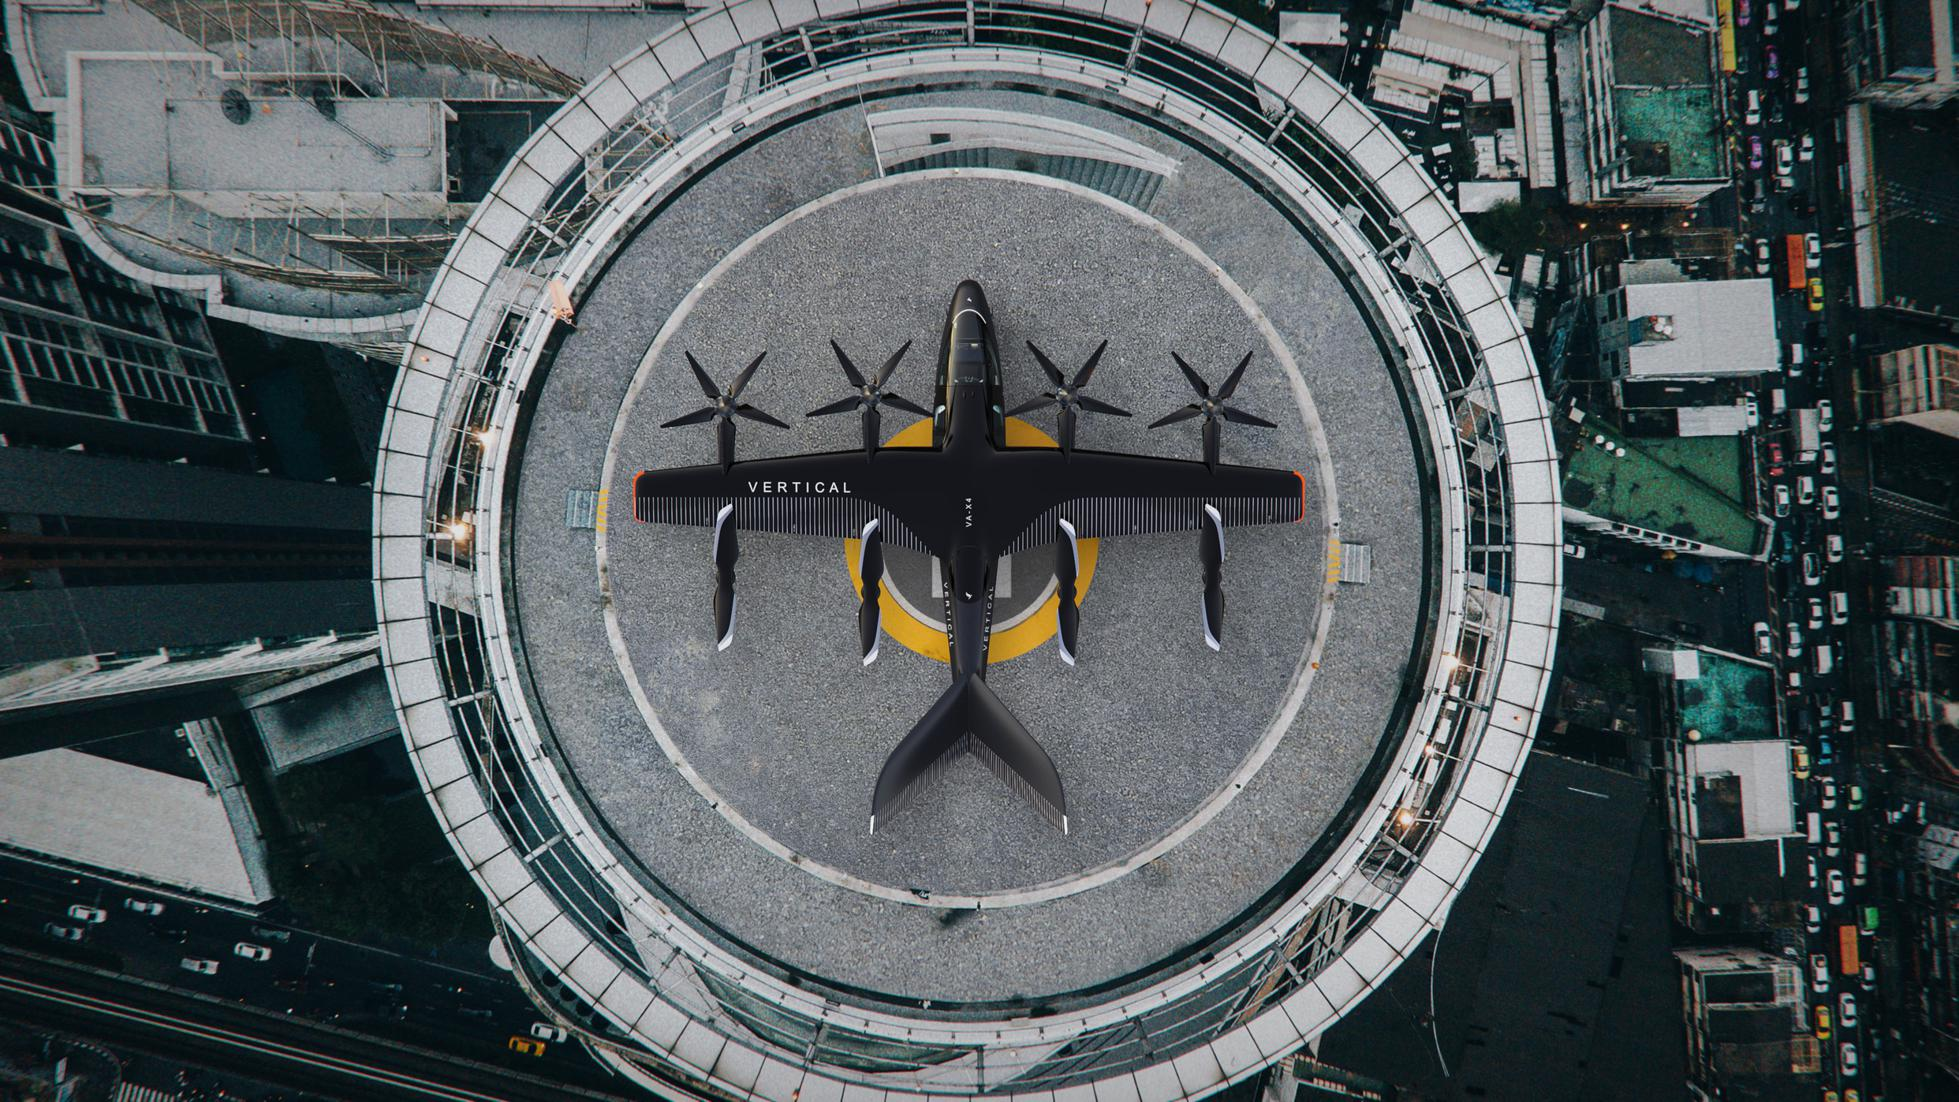 The eVTOL aircraft on its vertical launch pad.